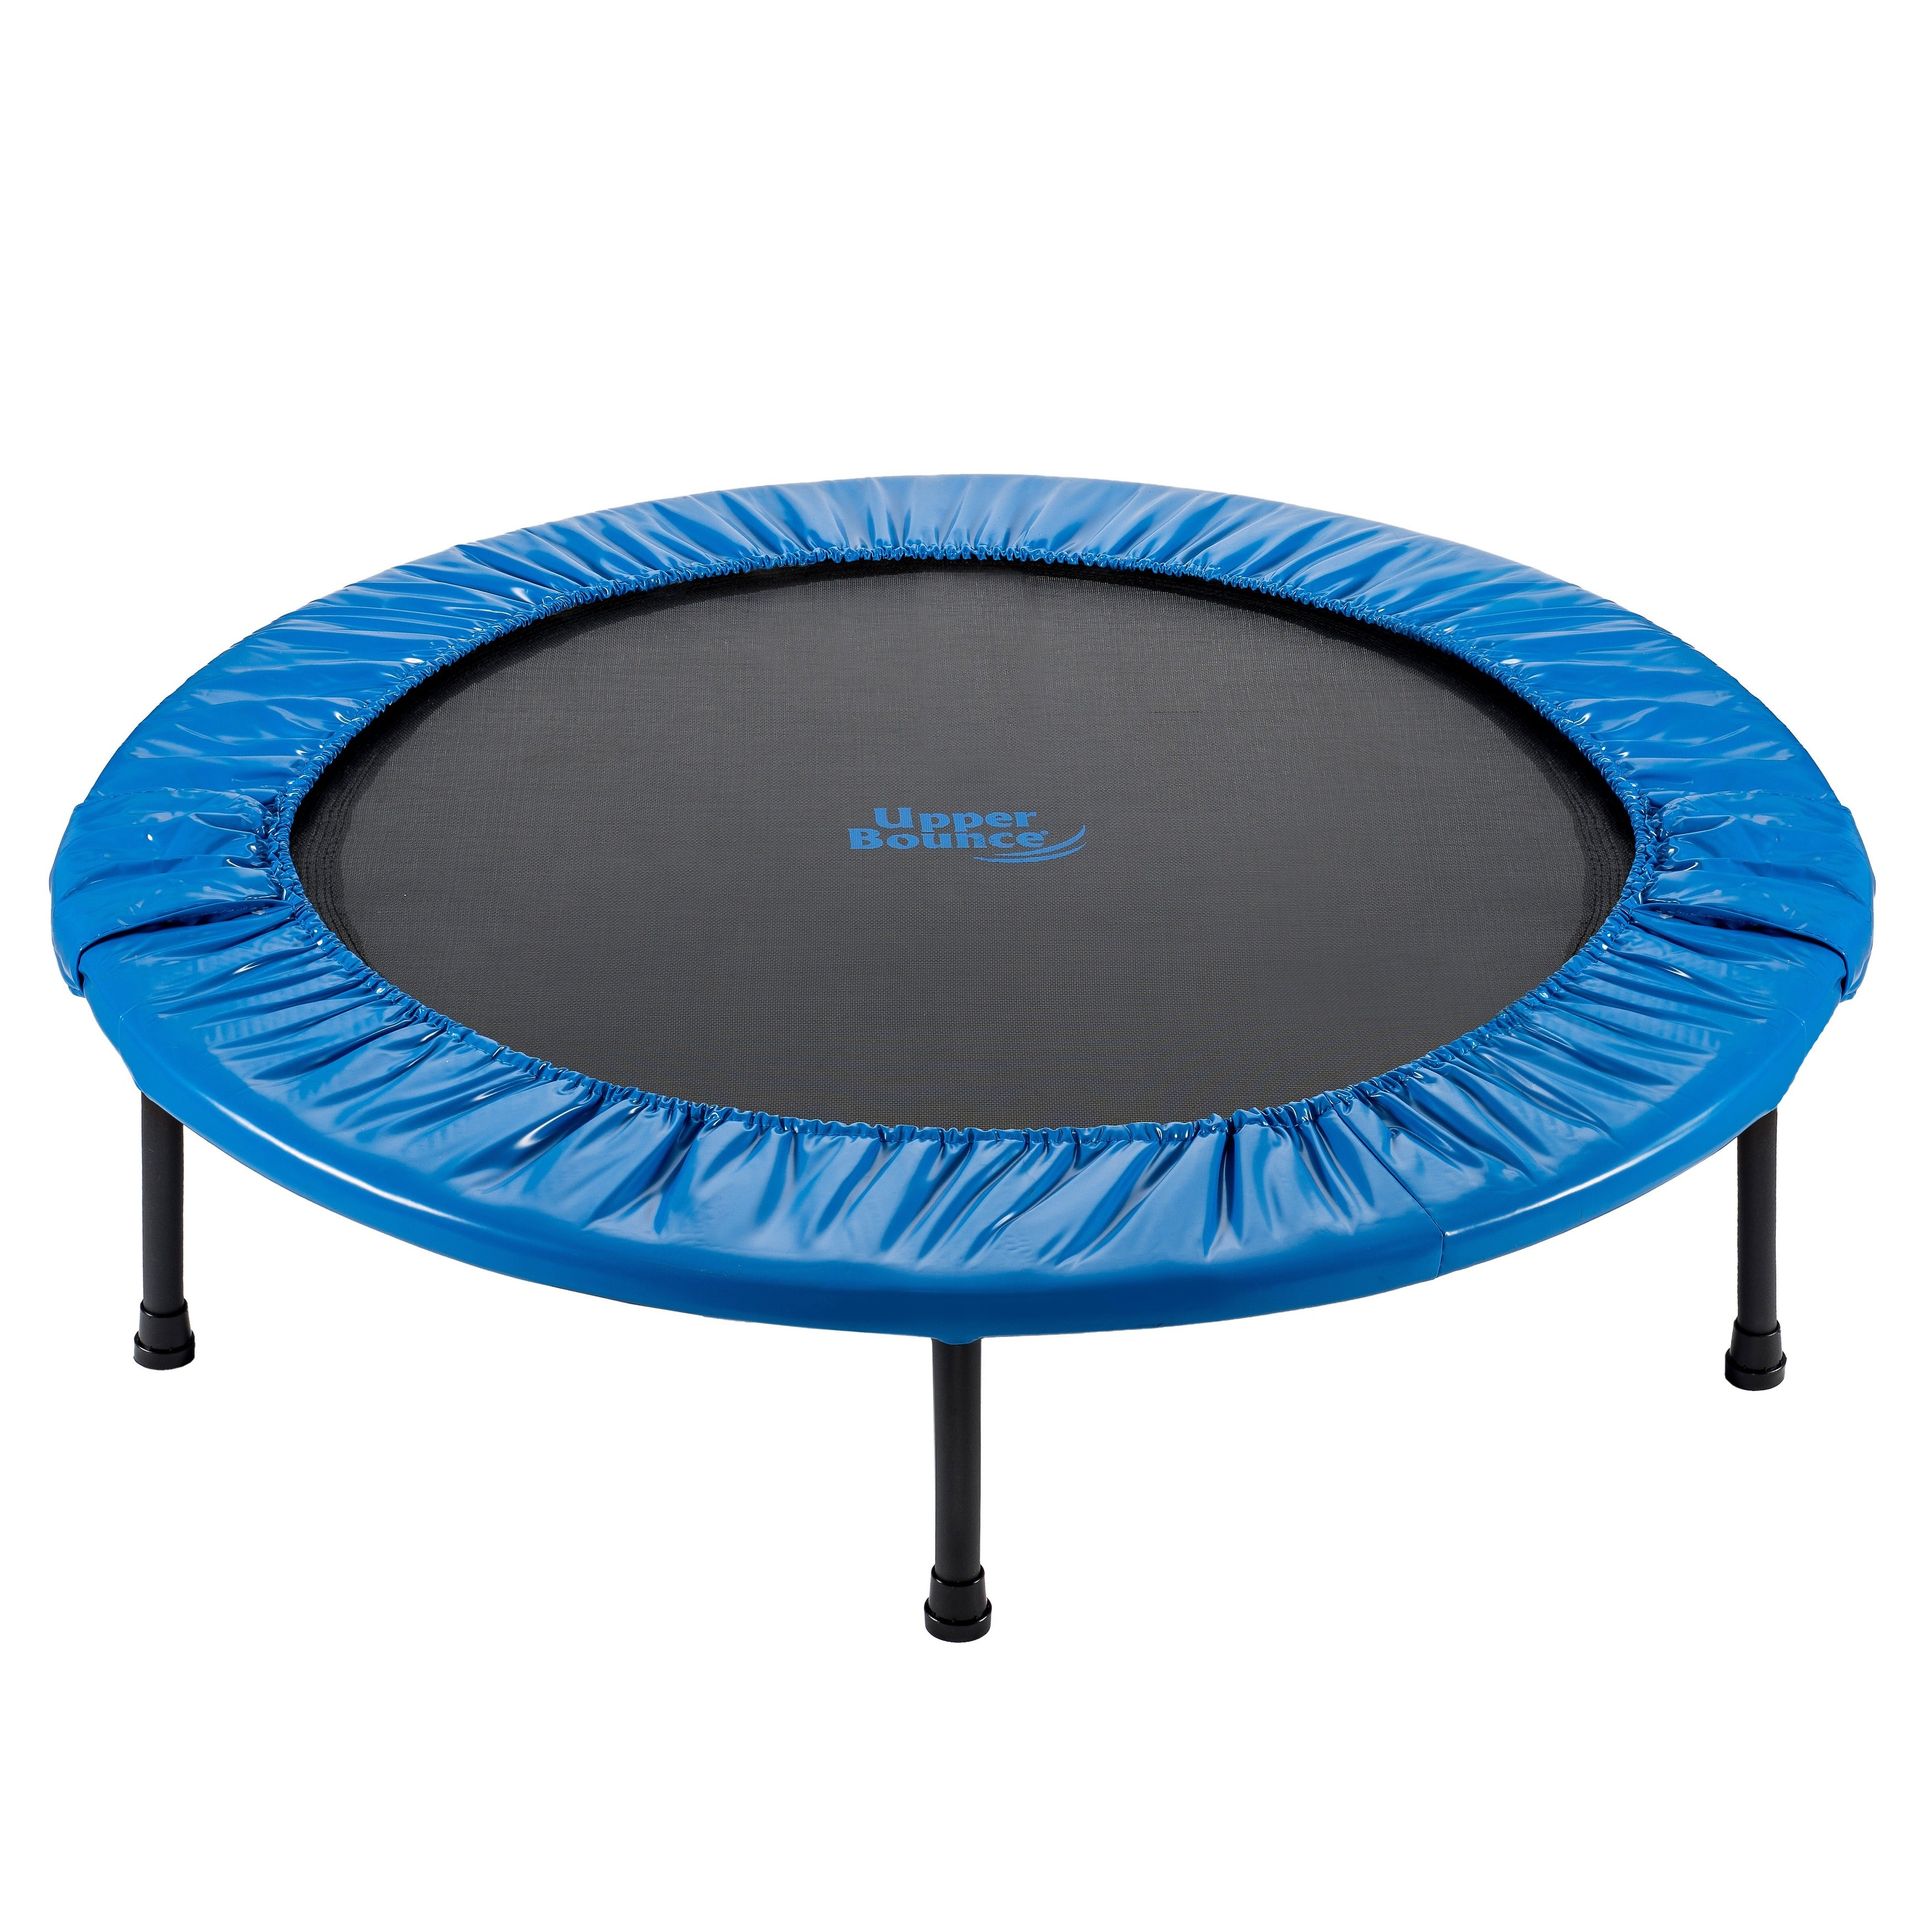 Overstock.com Upper Bounce 36-inch Mini Foldable Rebounder Fitness Trampoline at Sears.com